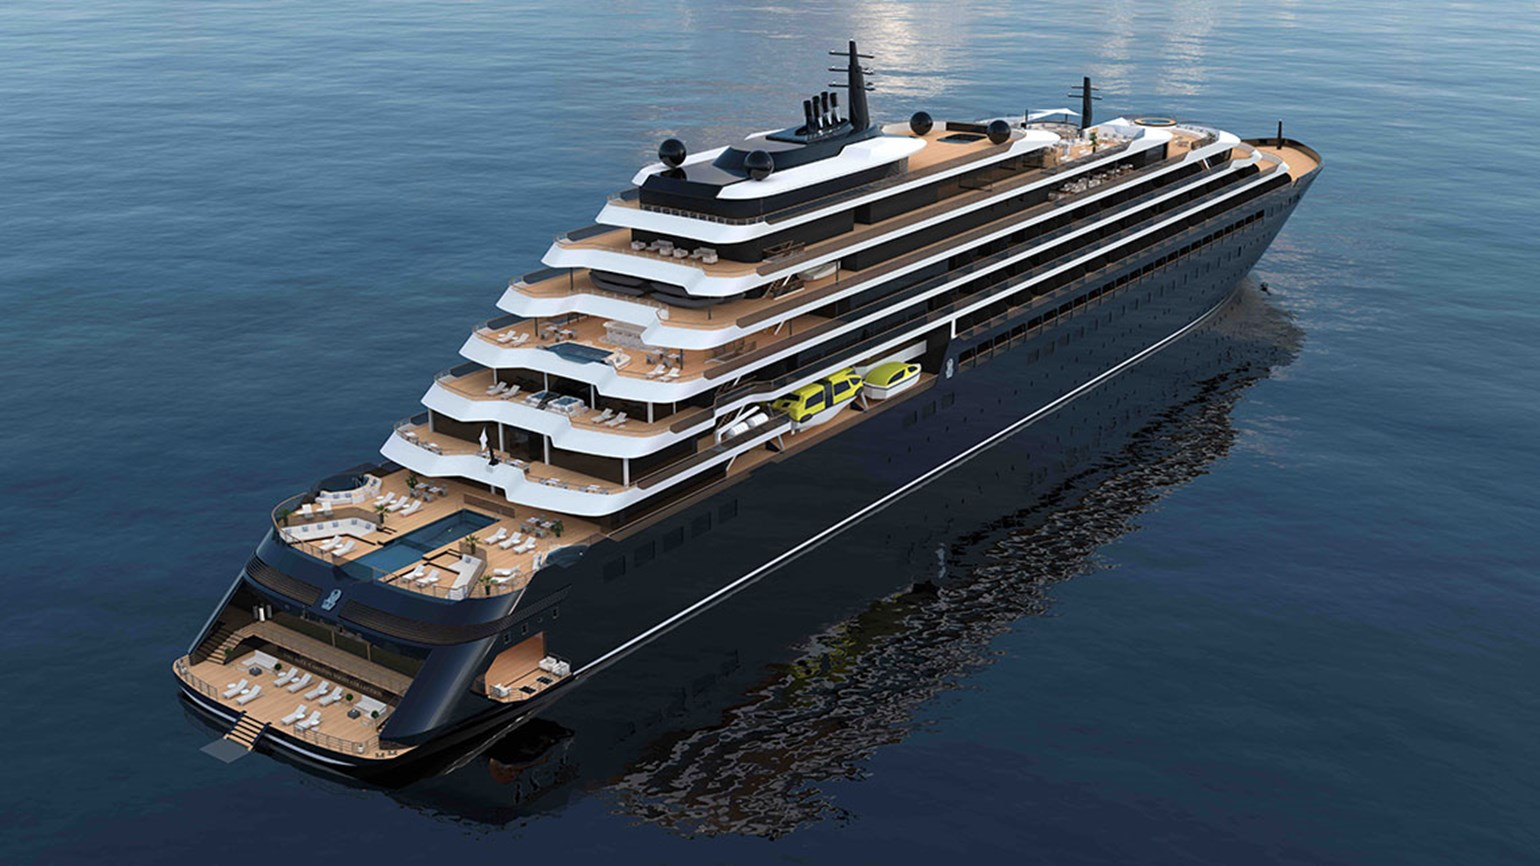 CORRECTED: Ritz-Carlton times first cruise to Super Bowl